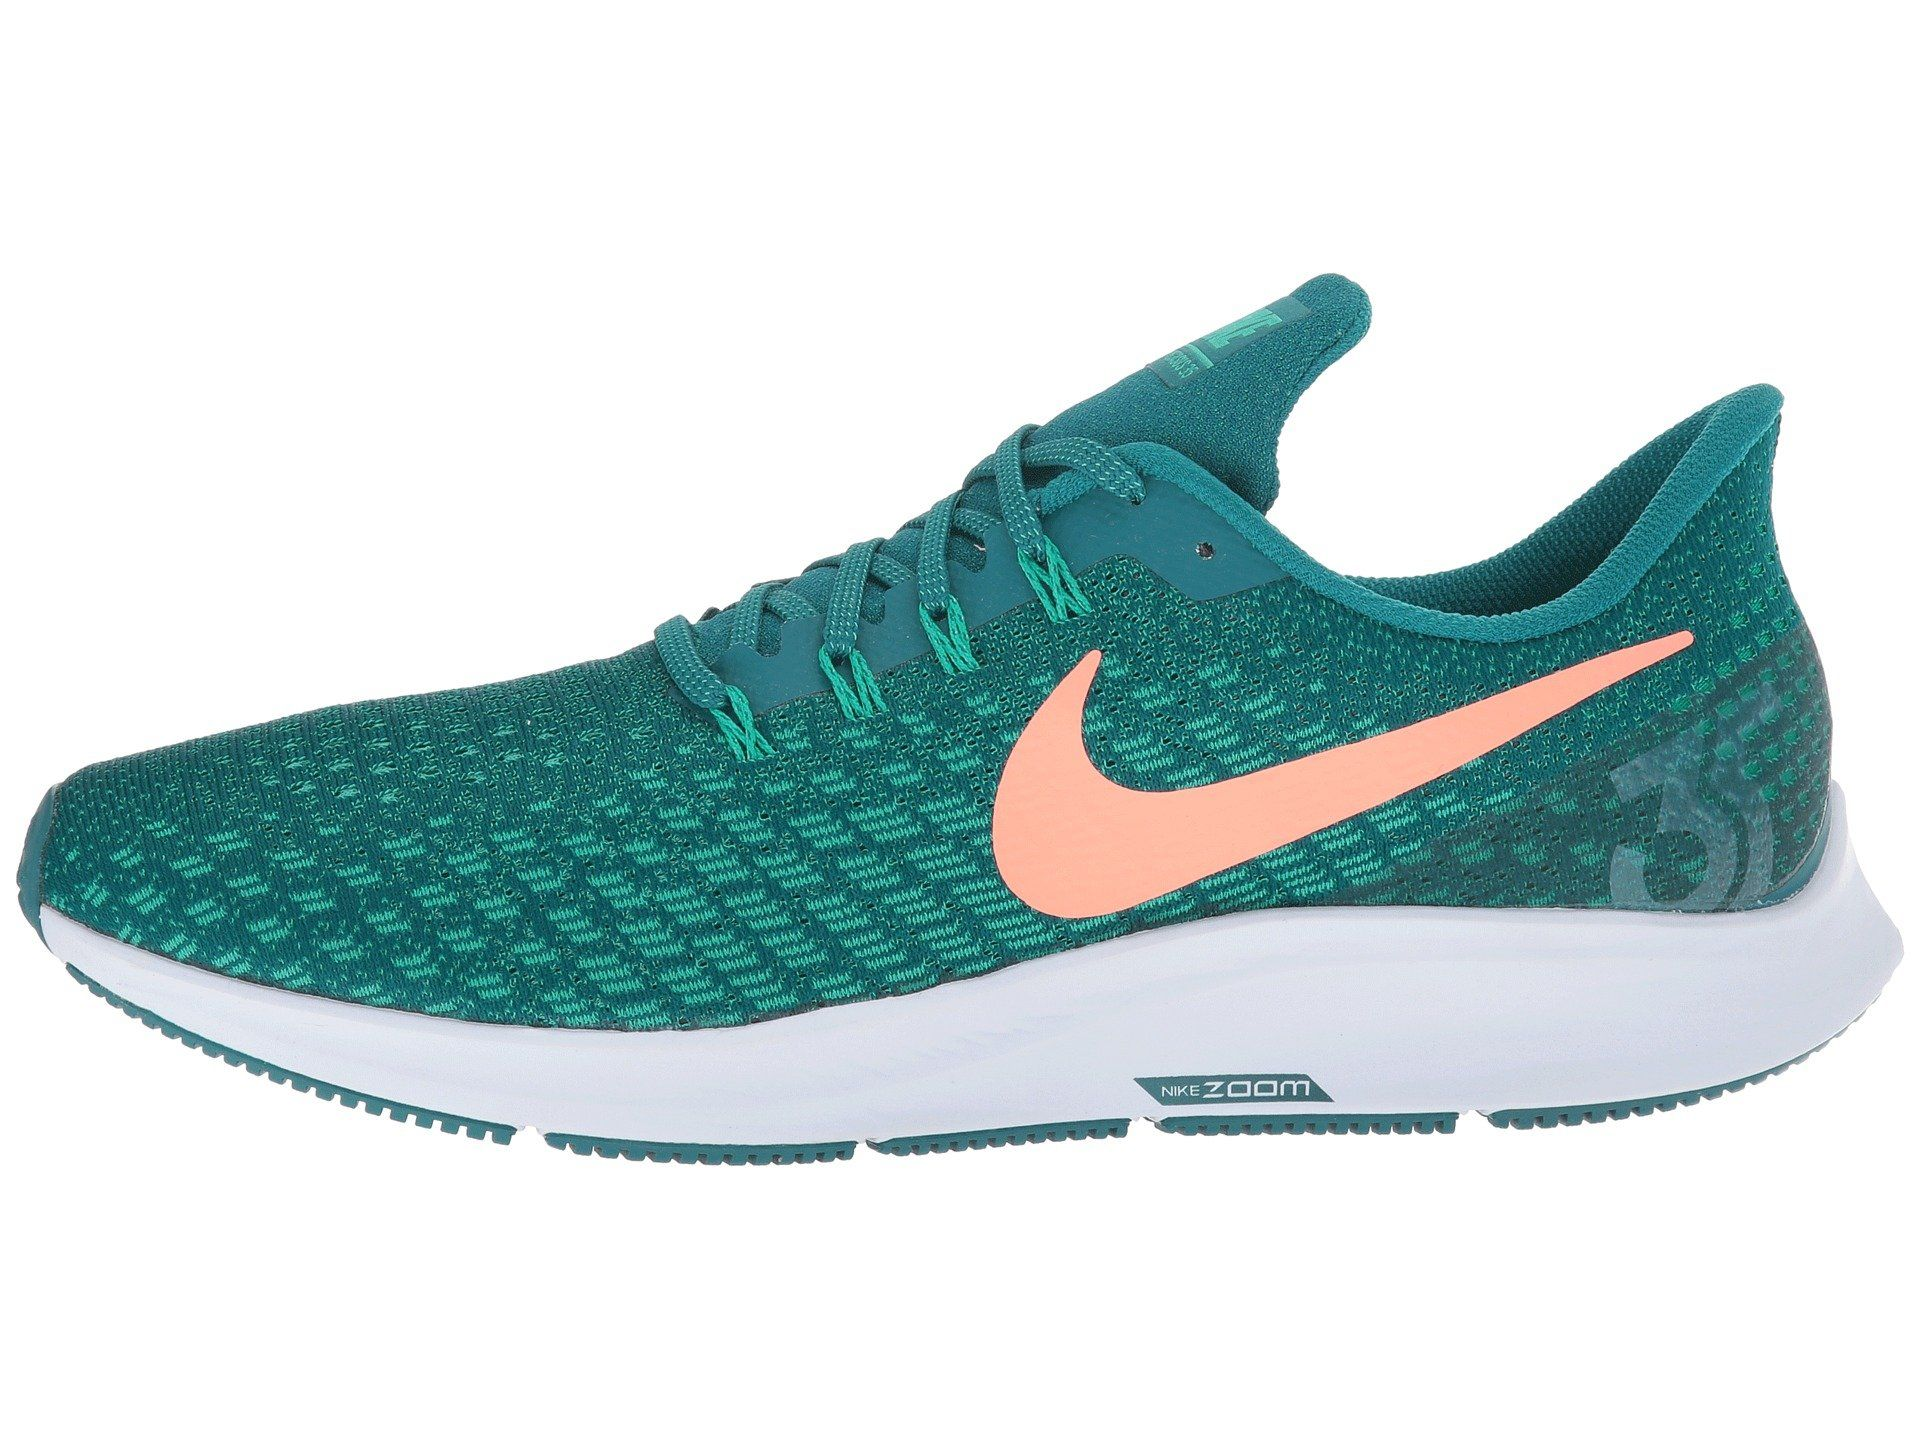 hot sale online be3cb e5f87 Best Nike Running Shoes   Nike Shoe Reviews 2019